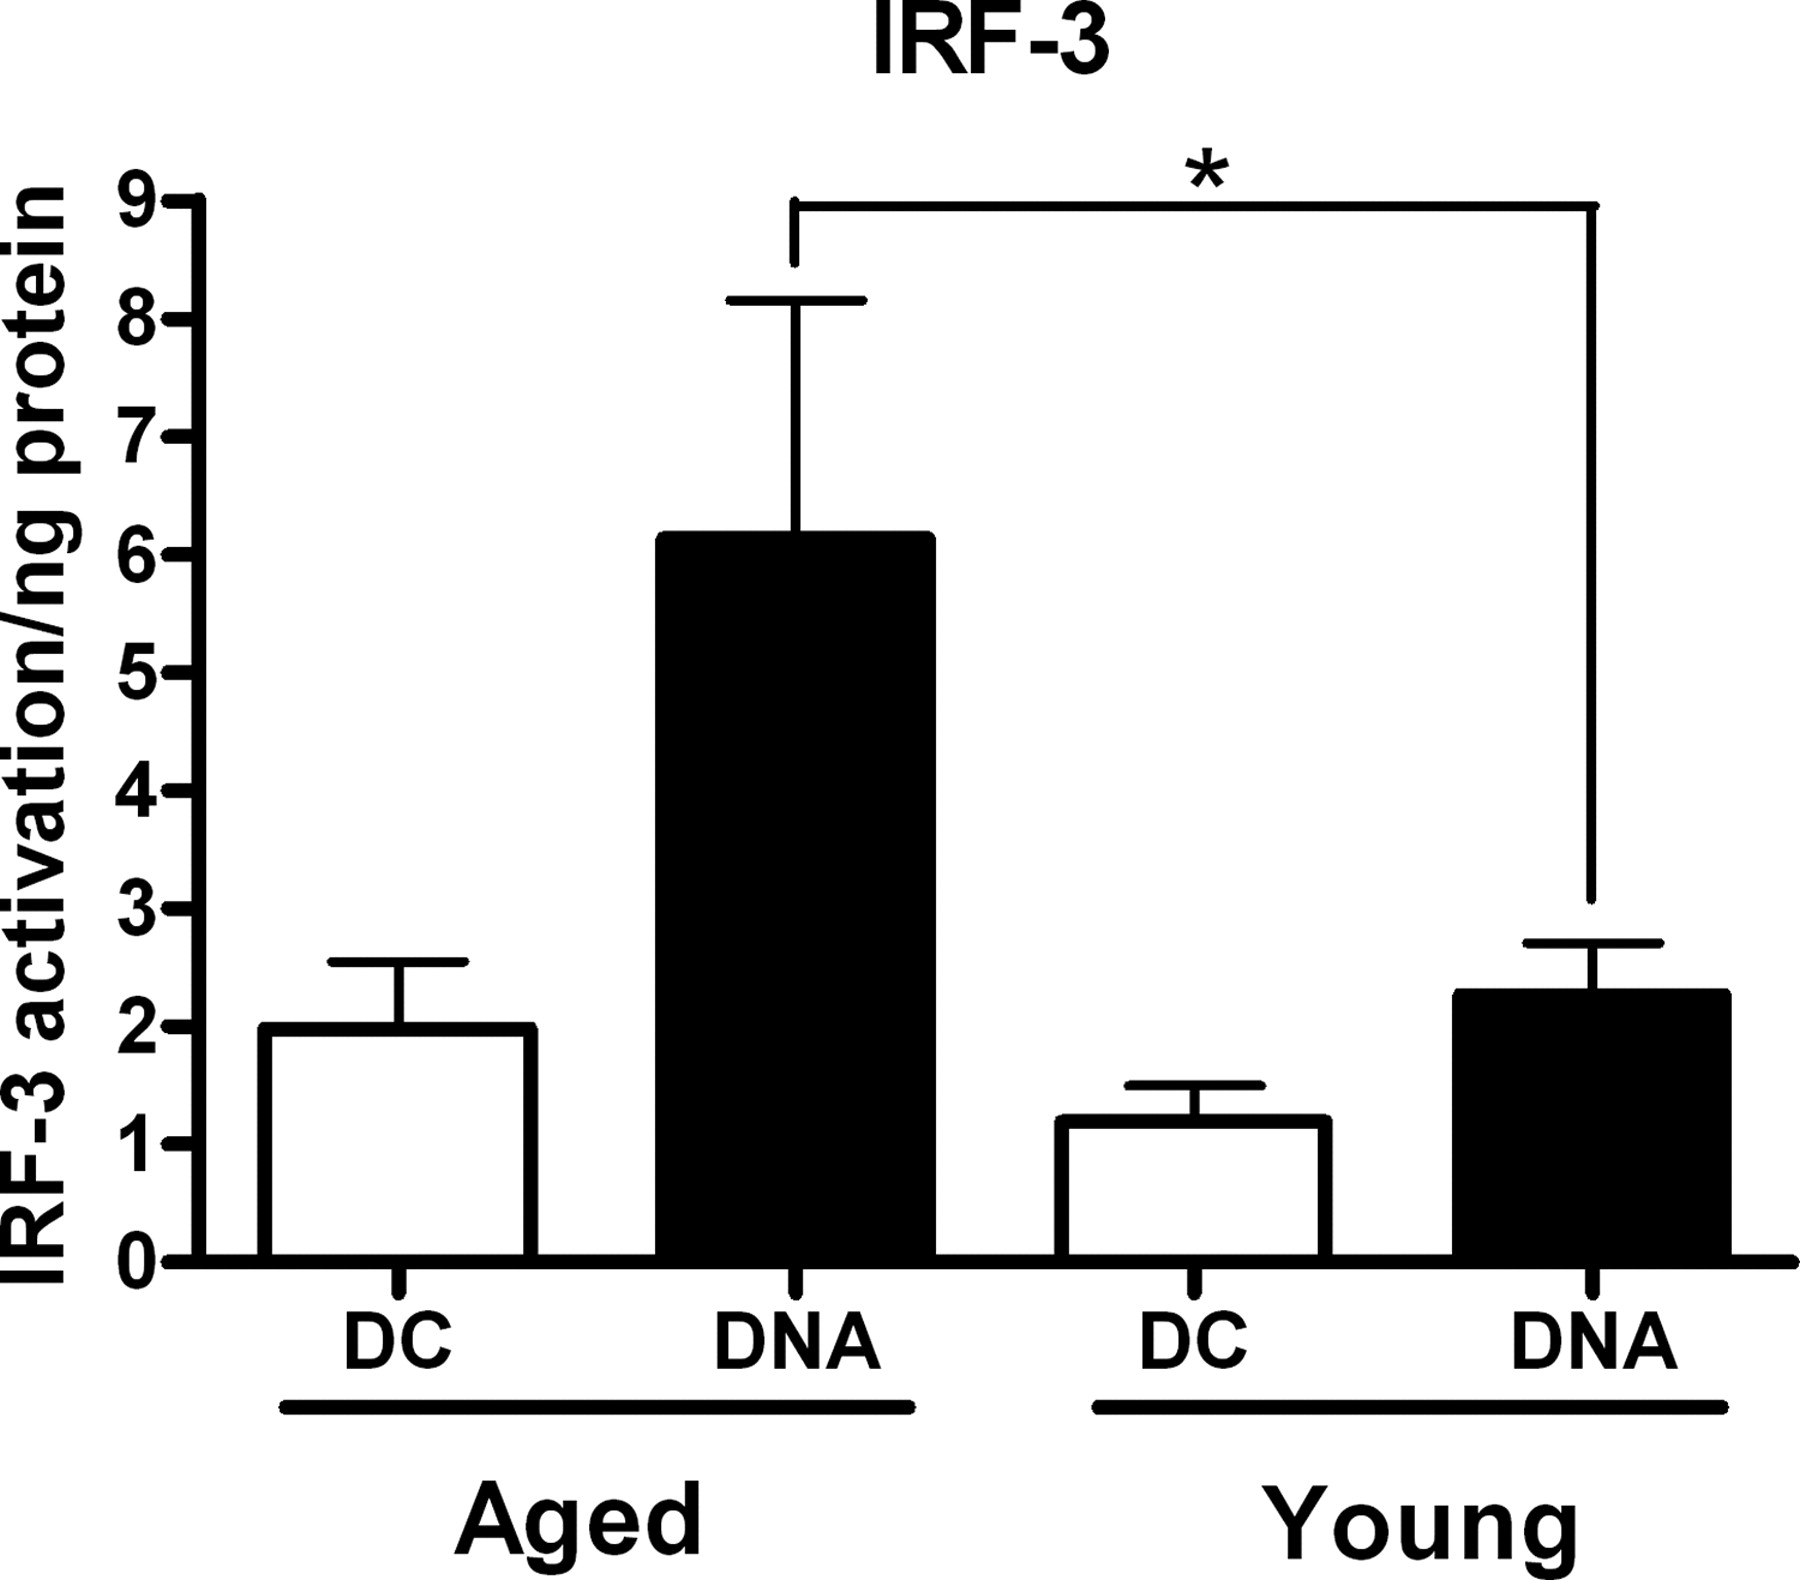 Increased Reactivity of Dendritic Cells from Aged Subjects